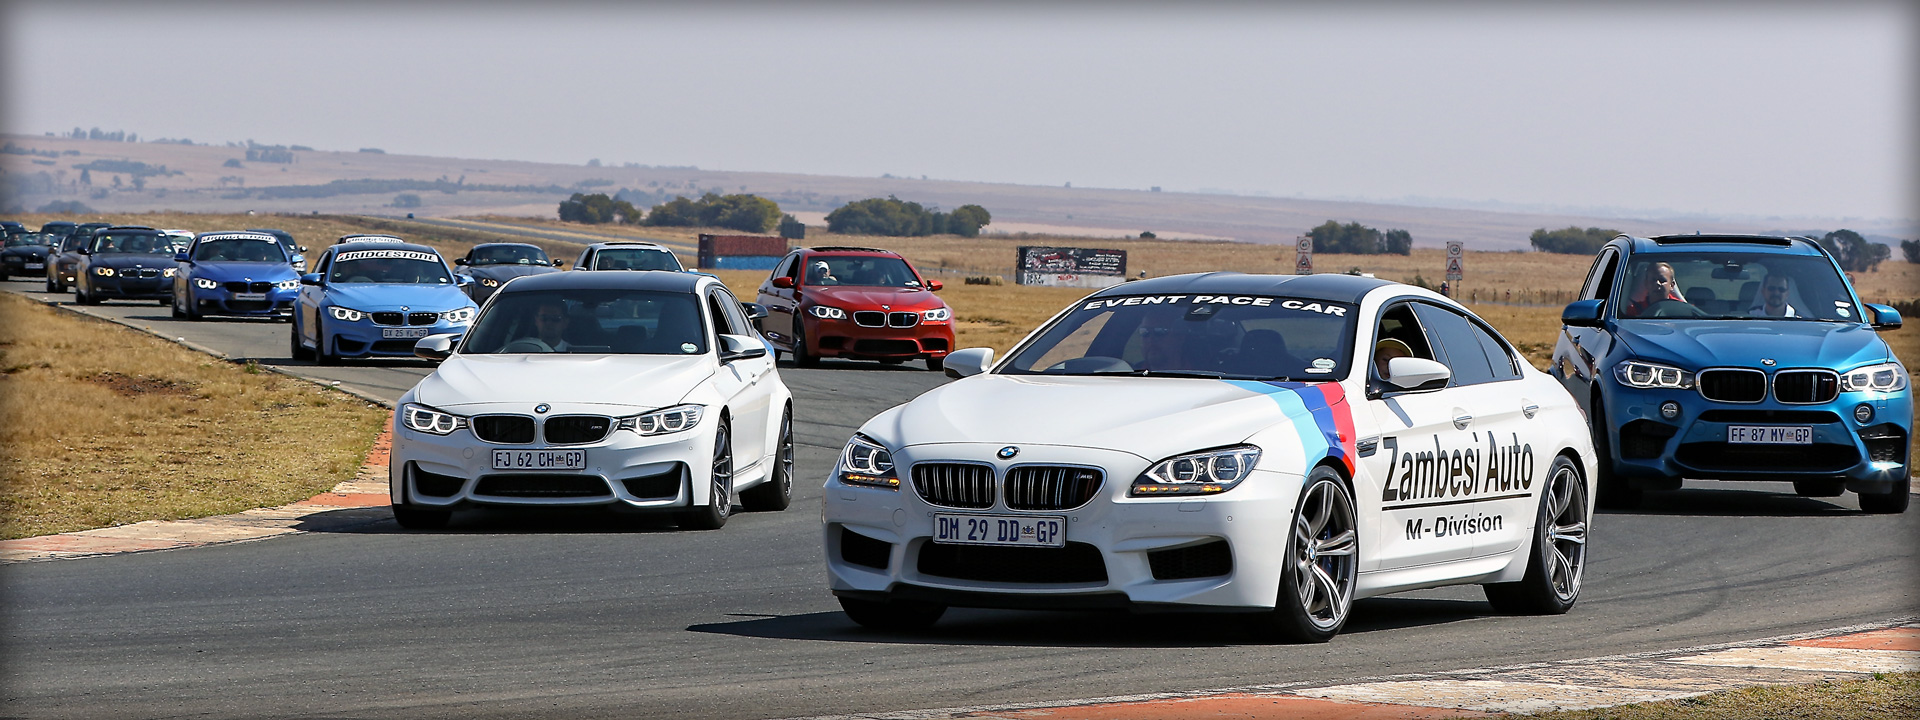 BMW Car Club Track Day Season kicks off at Zwartkops on 5 March 2017